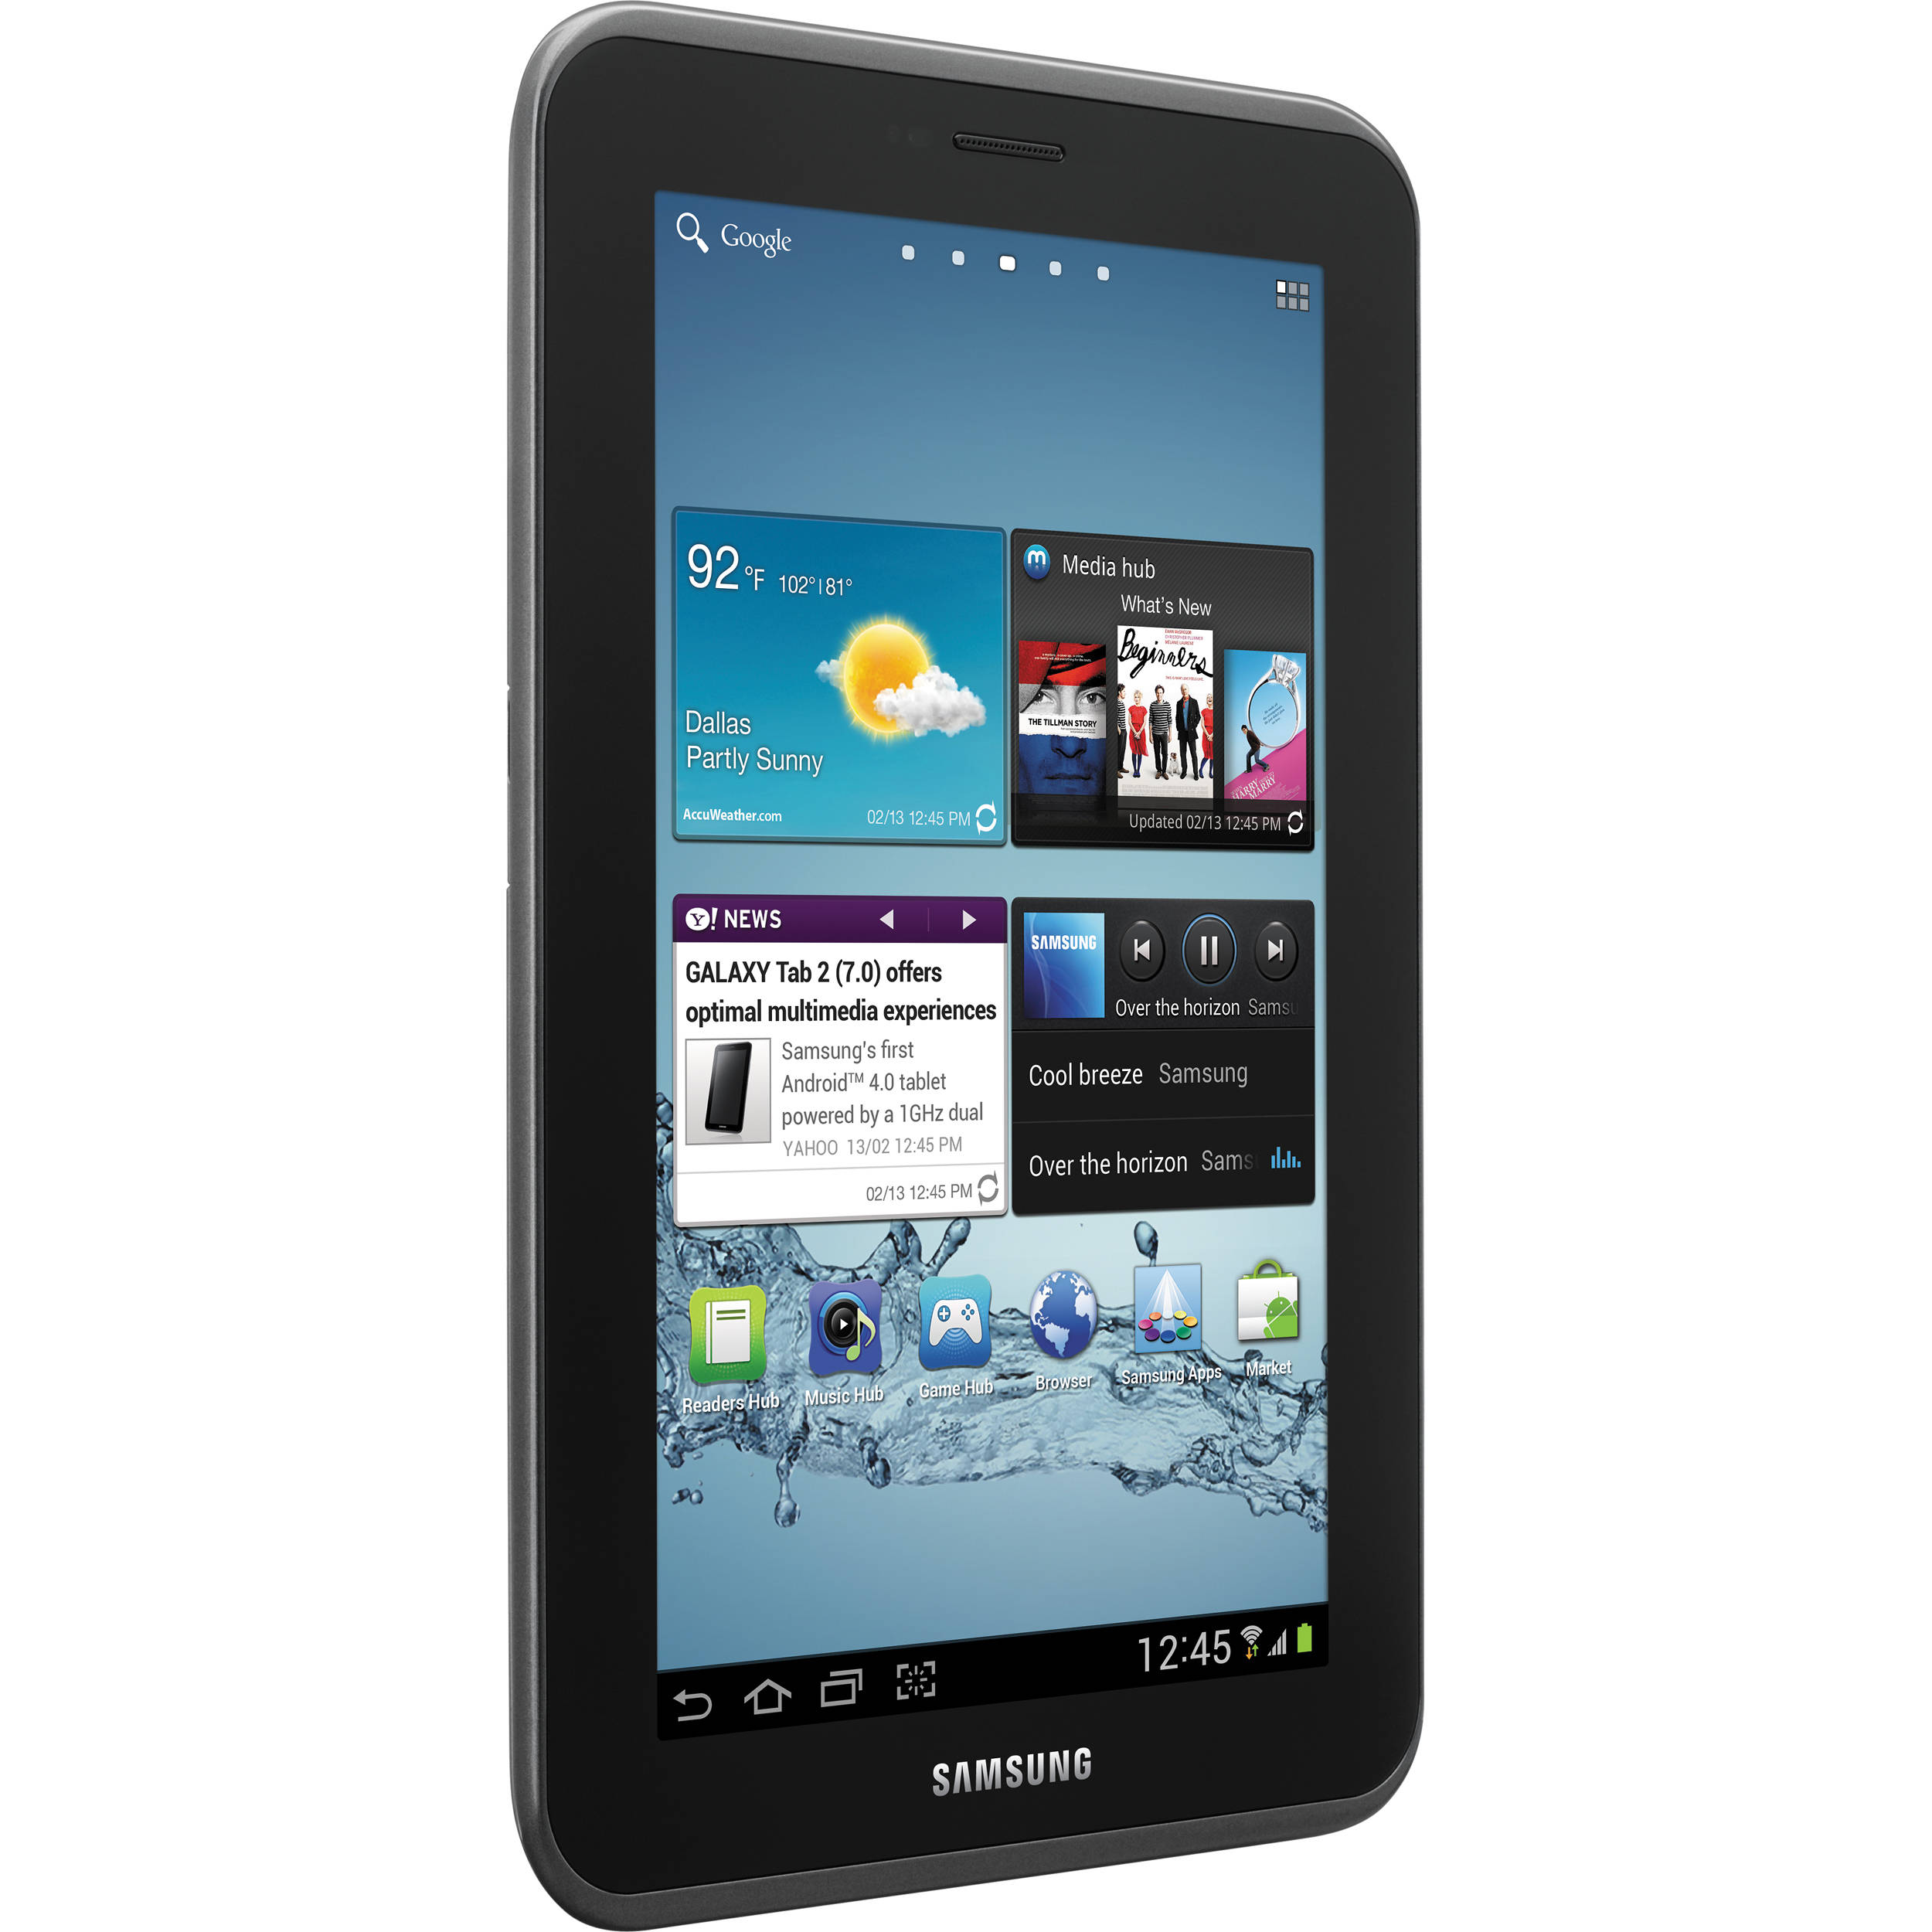 samsung 8gb galaxy tab 2 7 0 tablet gt p3113tsyxar b h rh bhphotovideo com samsung galaxy tab 7 inch user manual samsung galaxy tab 2 7.0 user manual